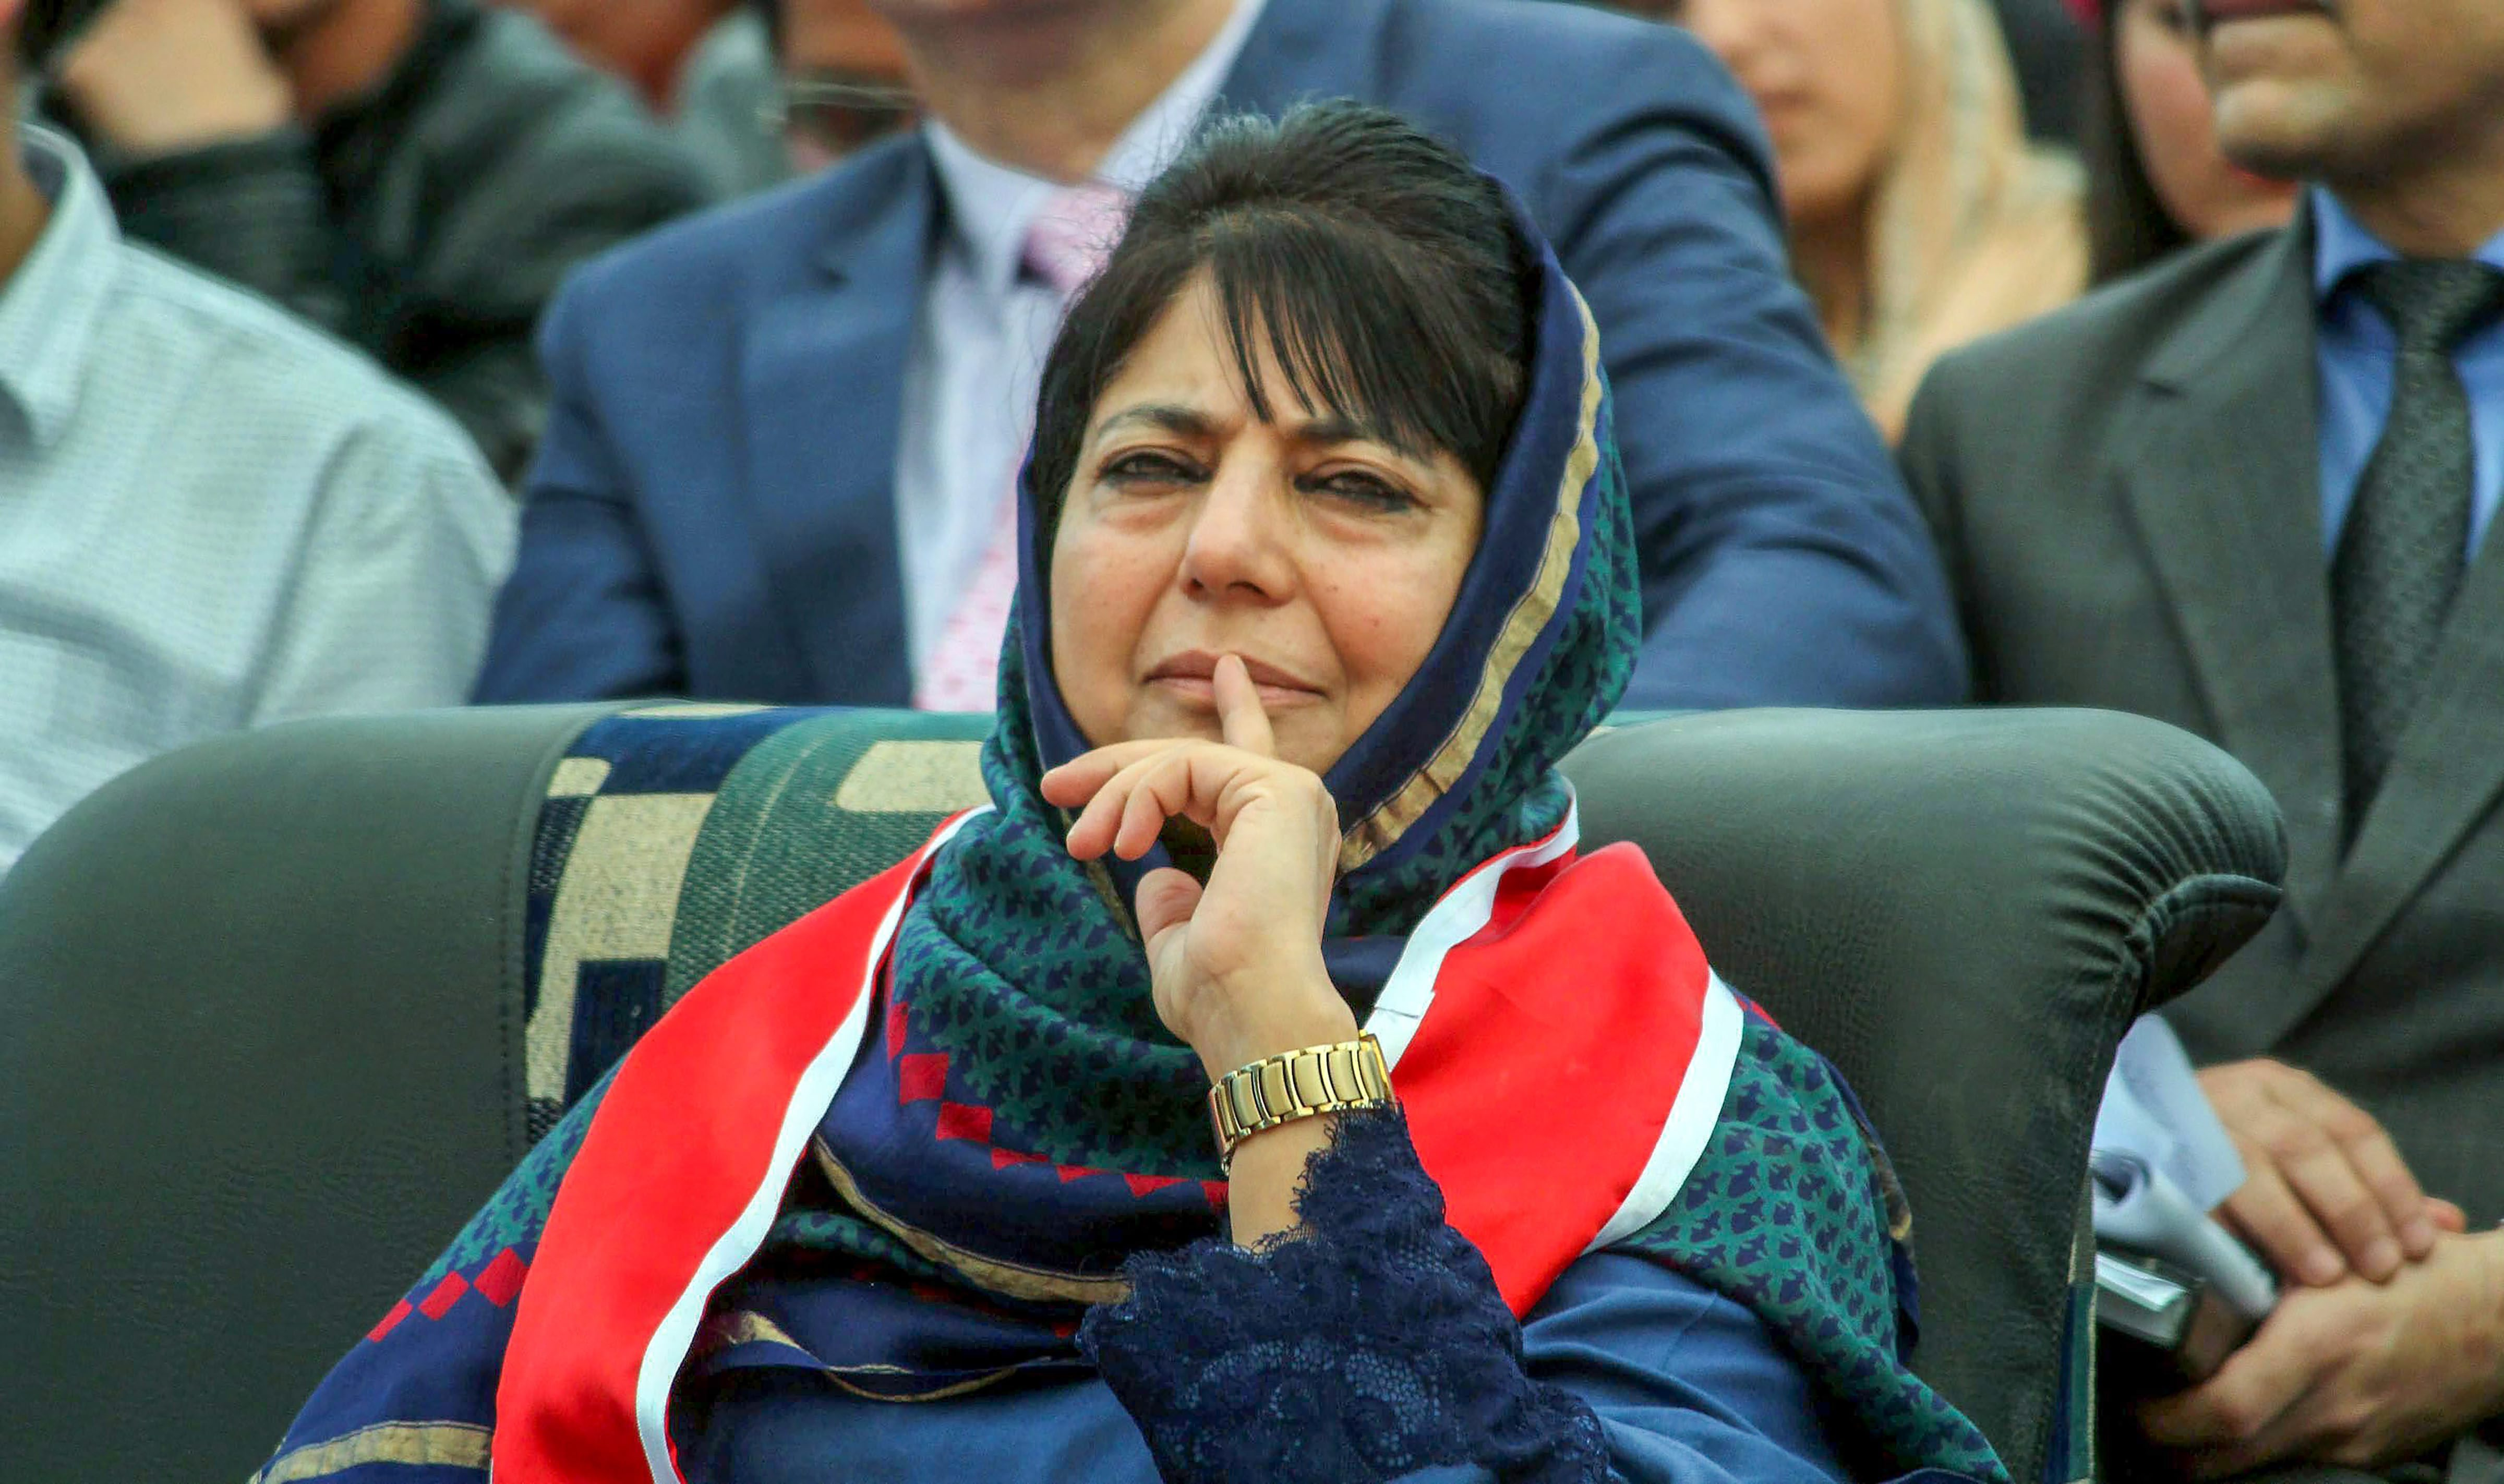 Kashmir: PDP in Trouble Over ED Summons, Notices to Leaders to Vacate Govt Housing